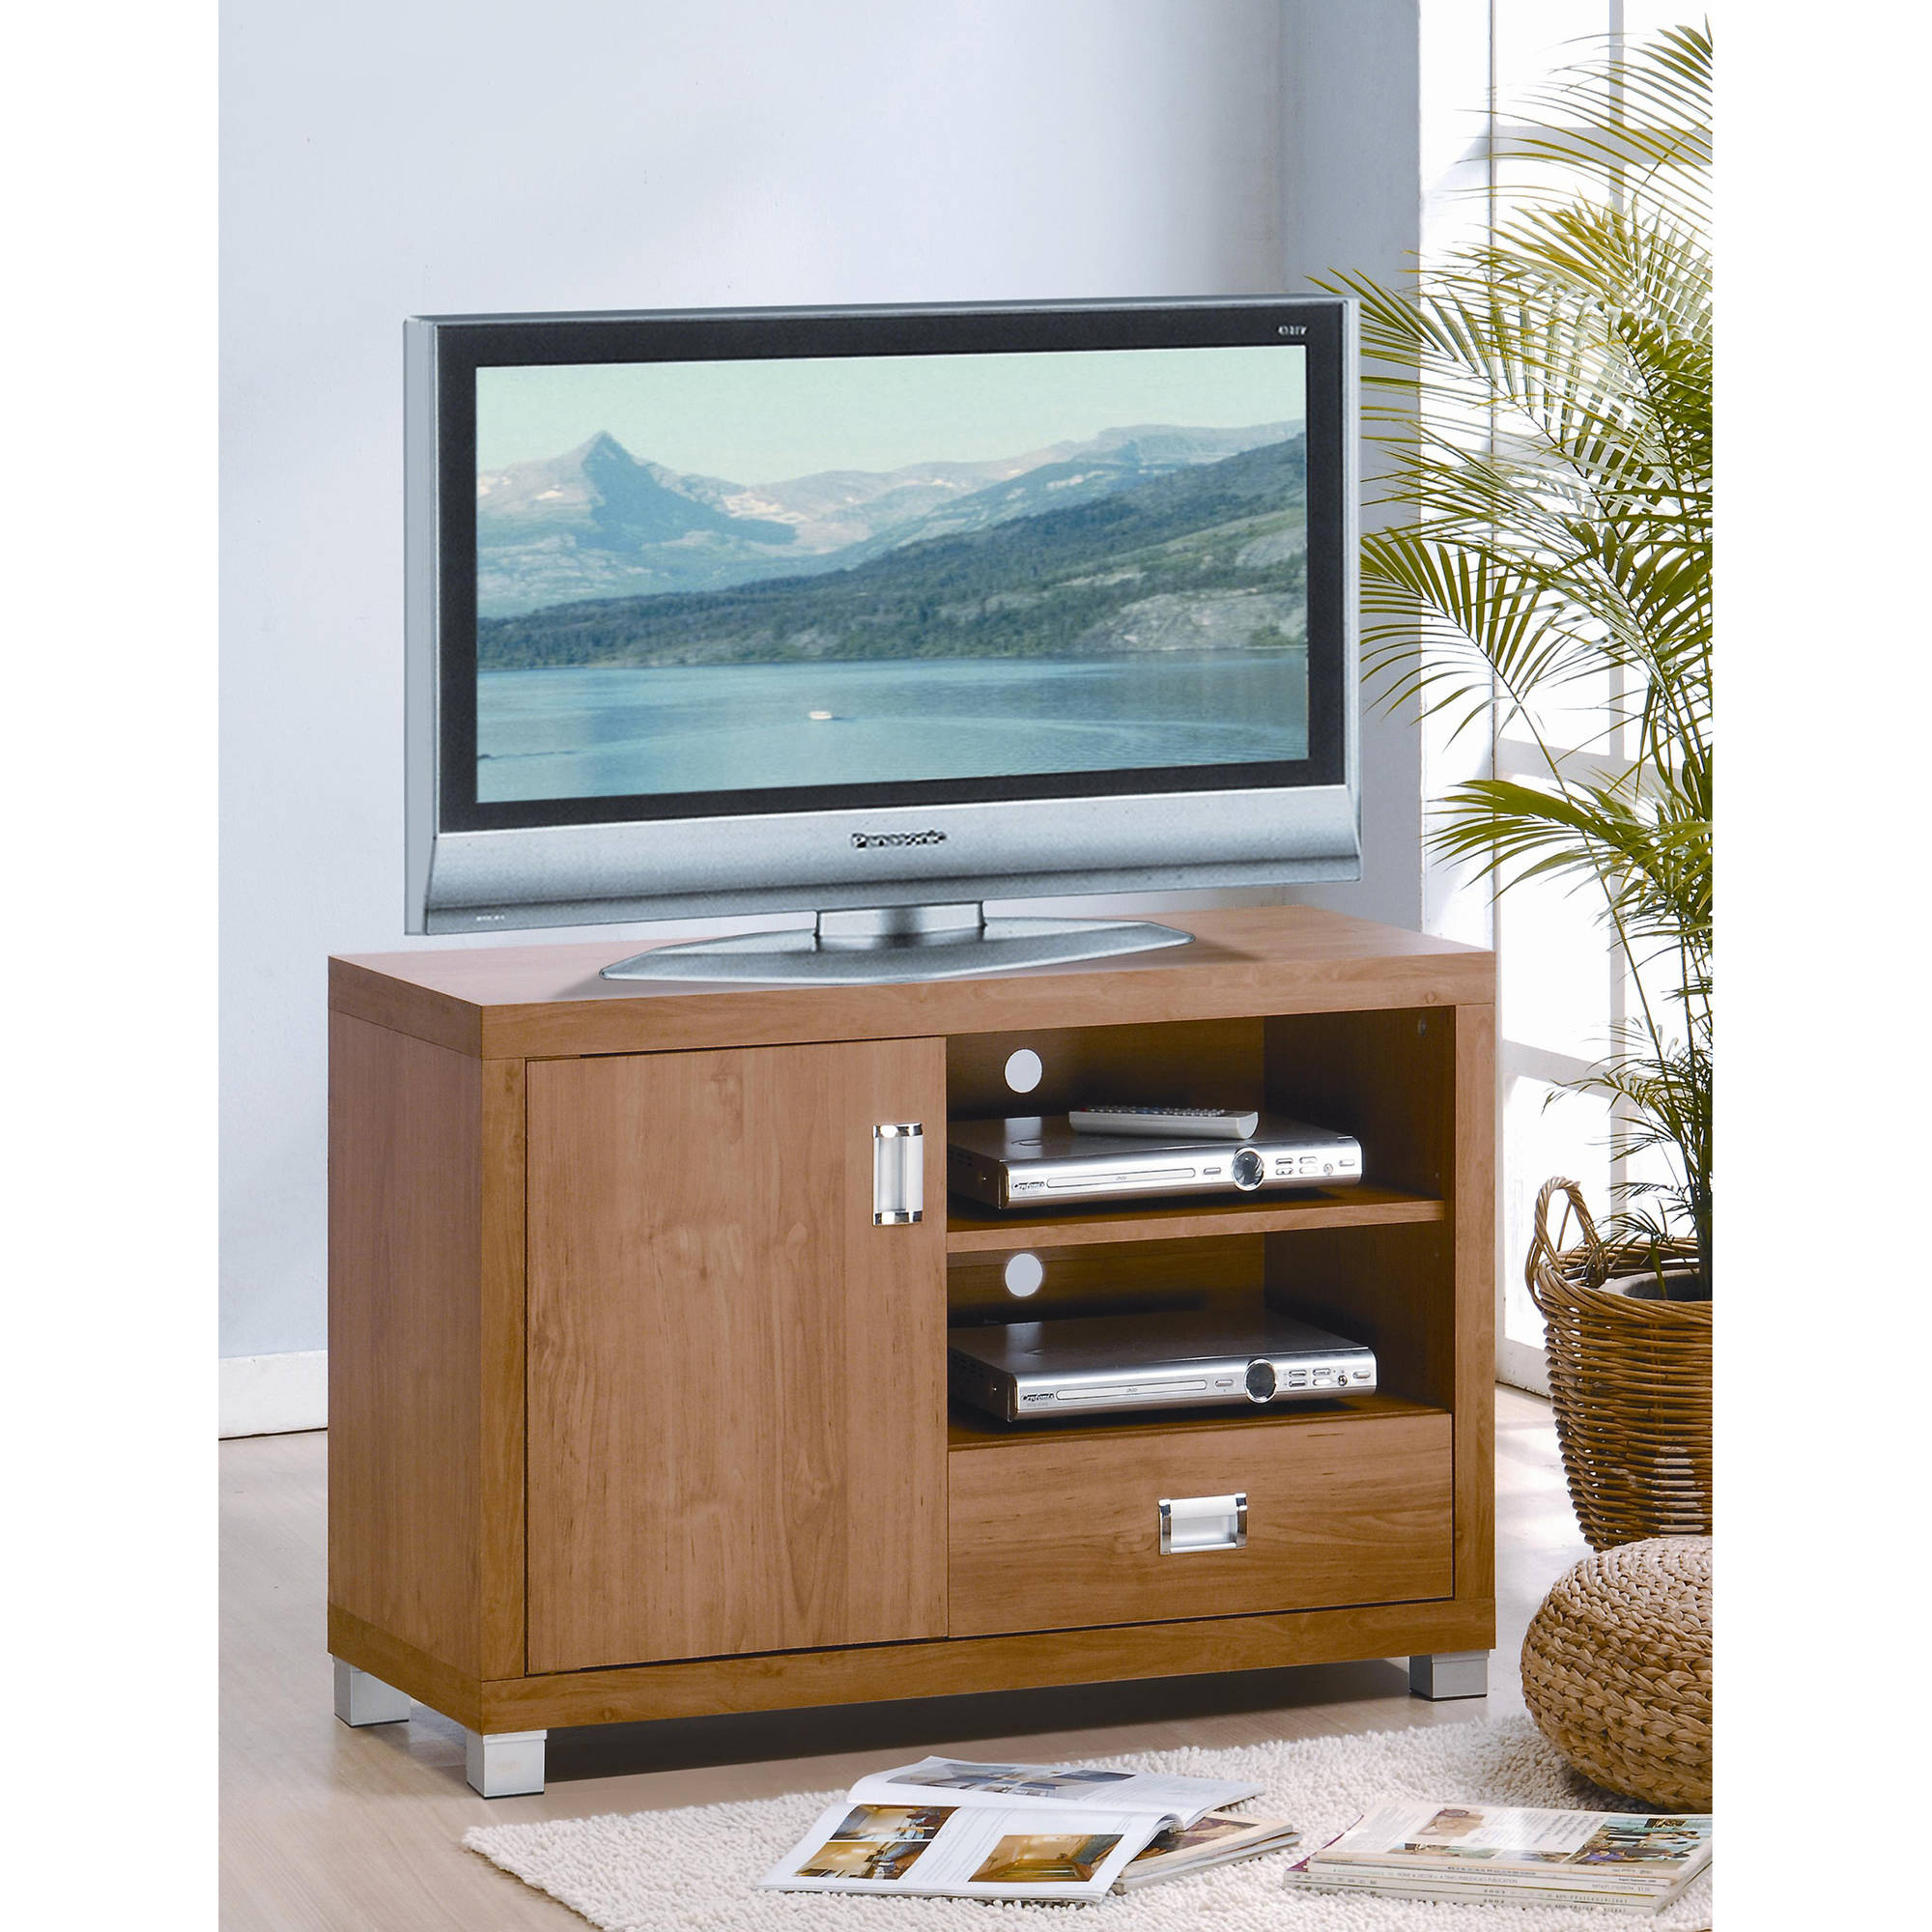 techni mobili tv cabinet maple - Tv Lift Cabinet